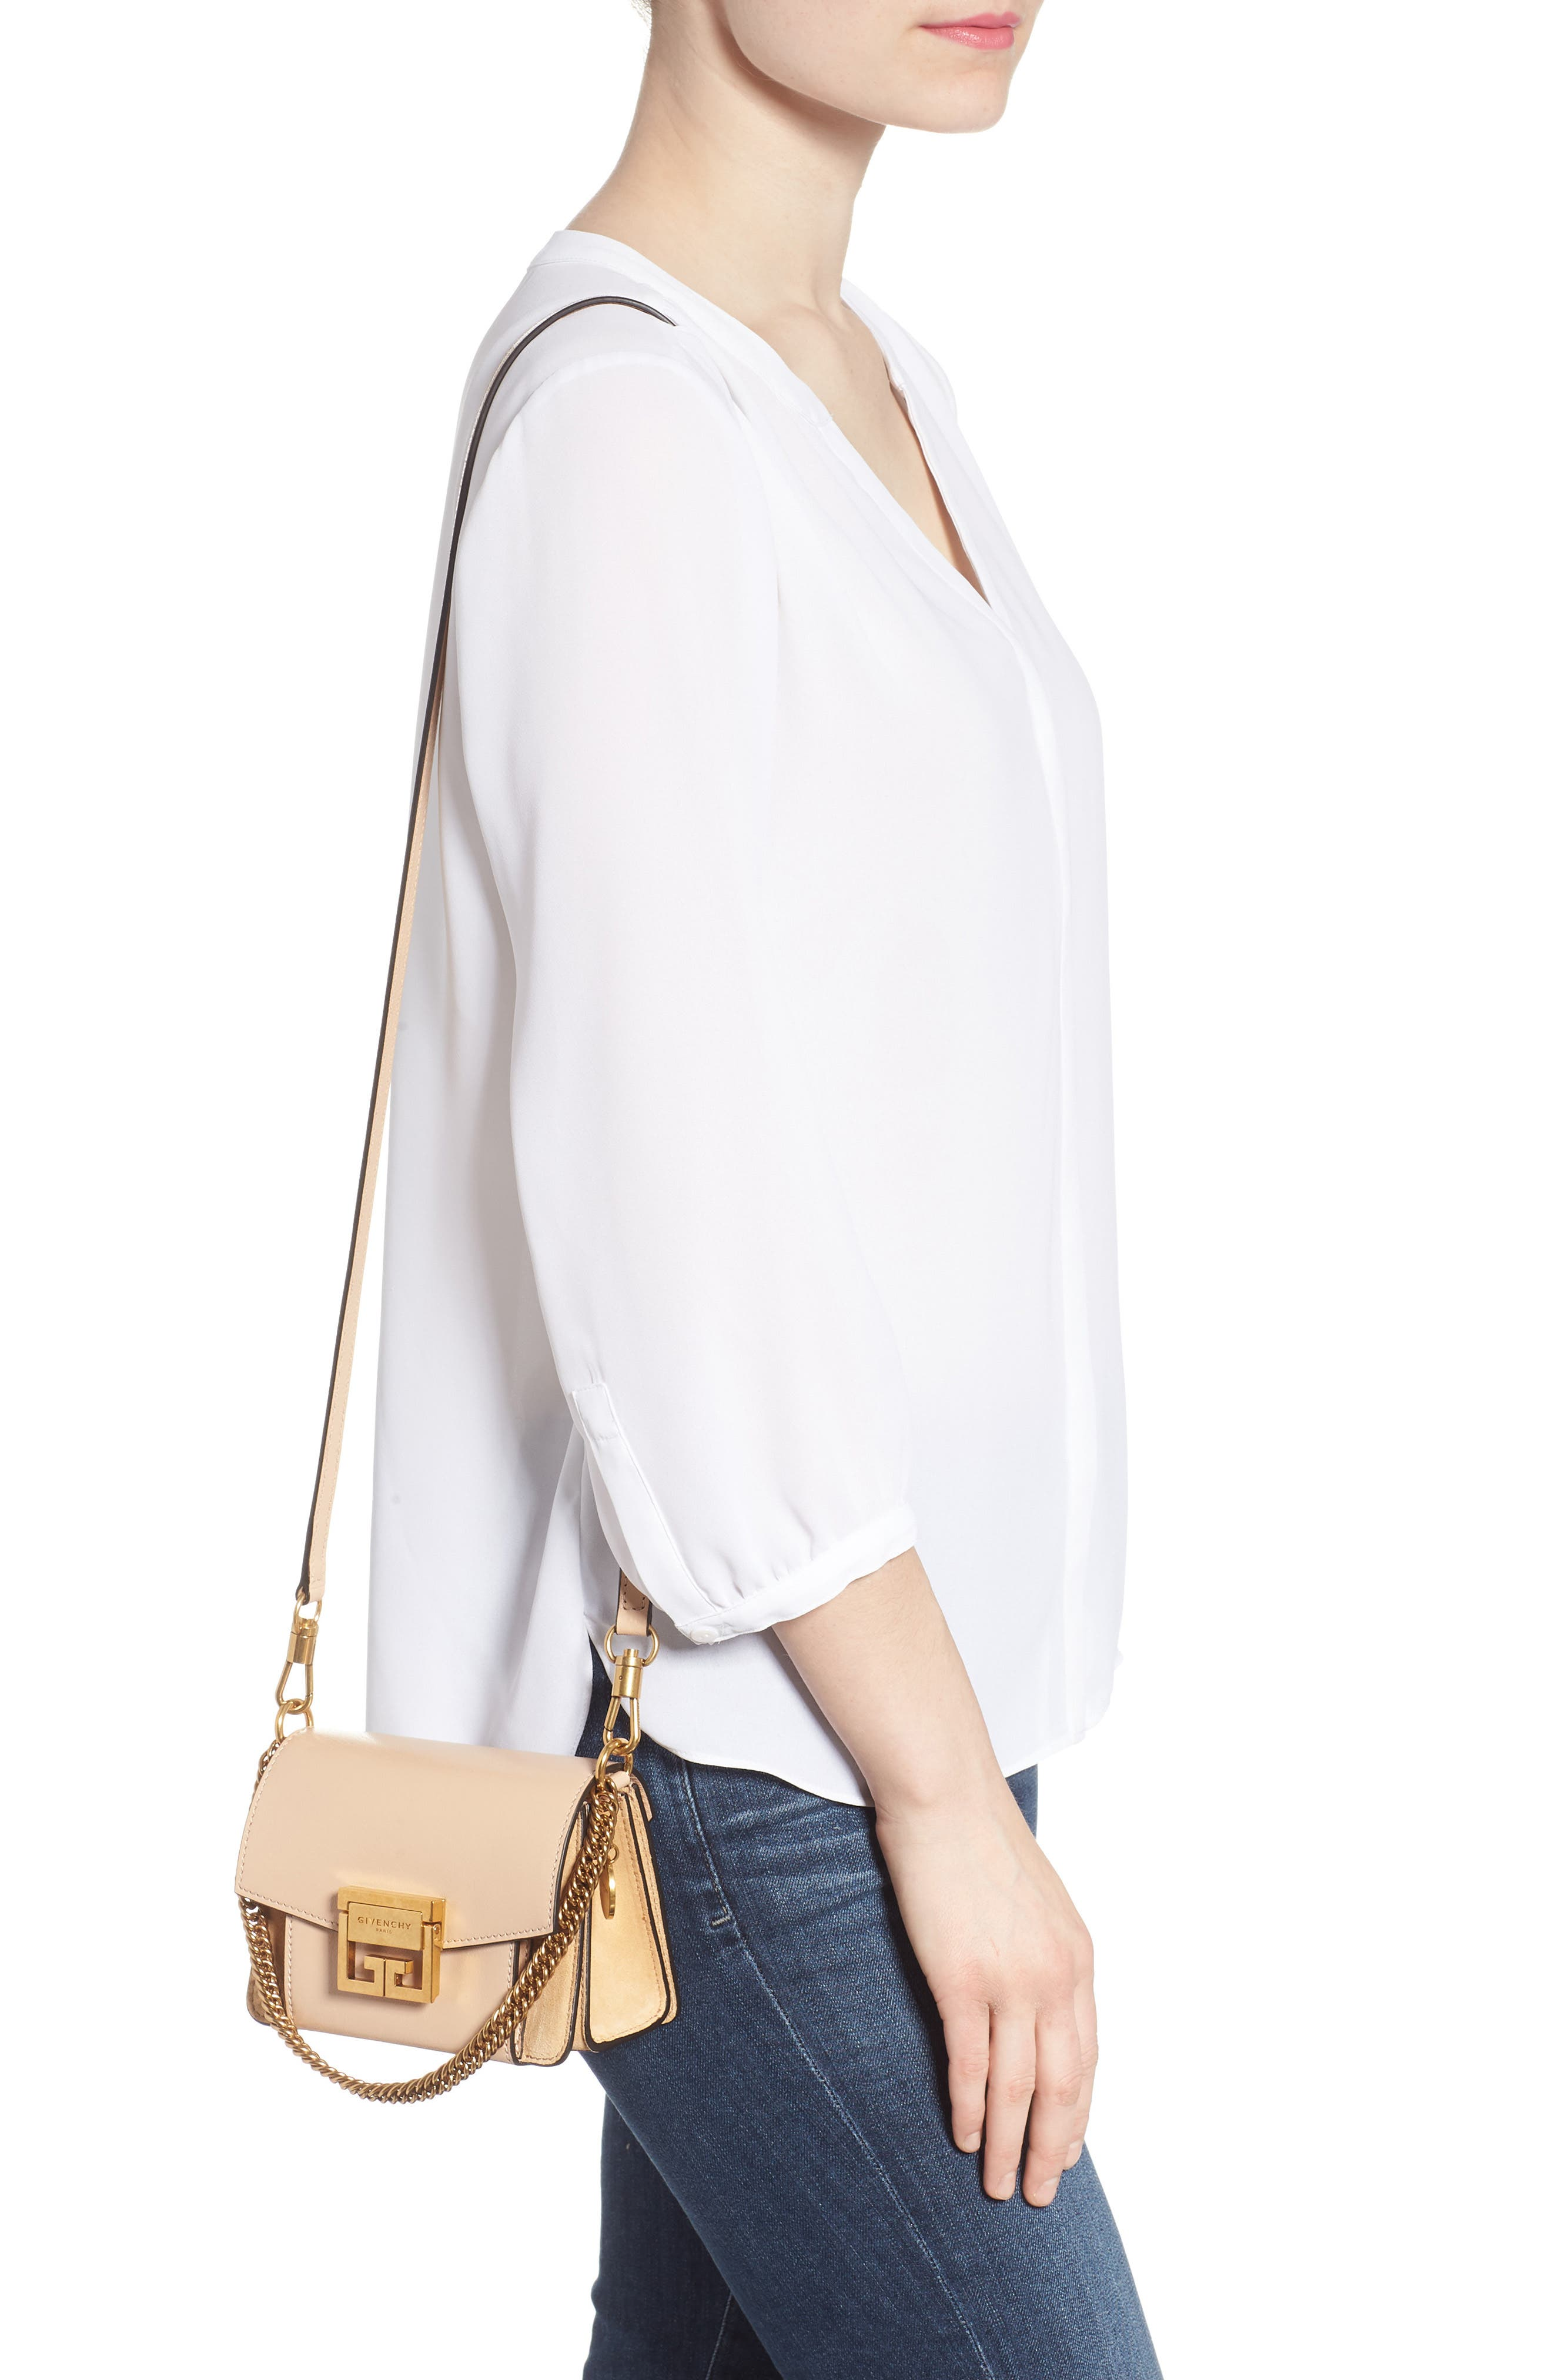 Mini GV3 Leather & Suede Crossbody Bag,                             Alternate thumbnail 2, color,                             NUDE/ LIGHT BEIGE